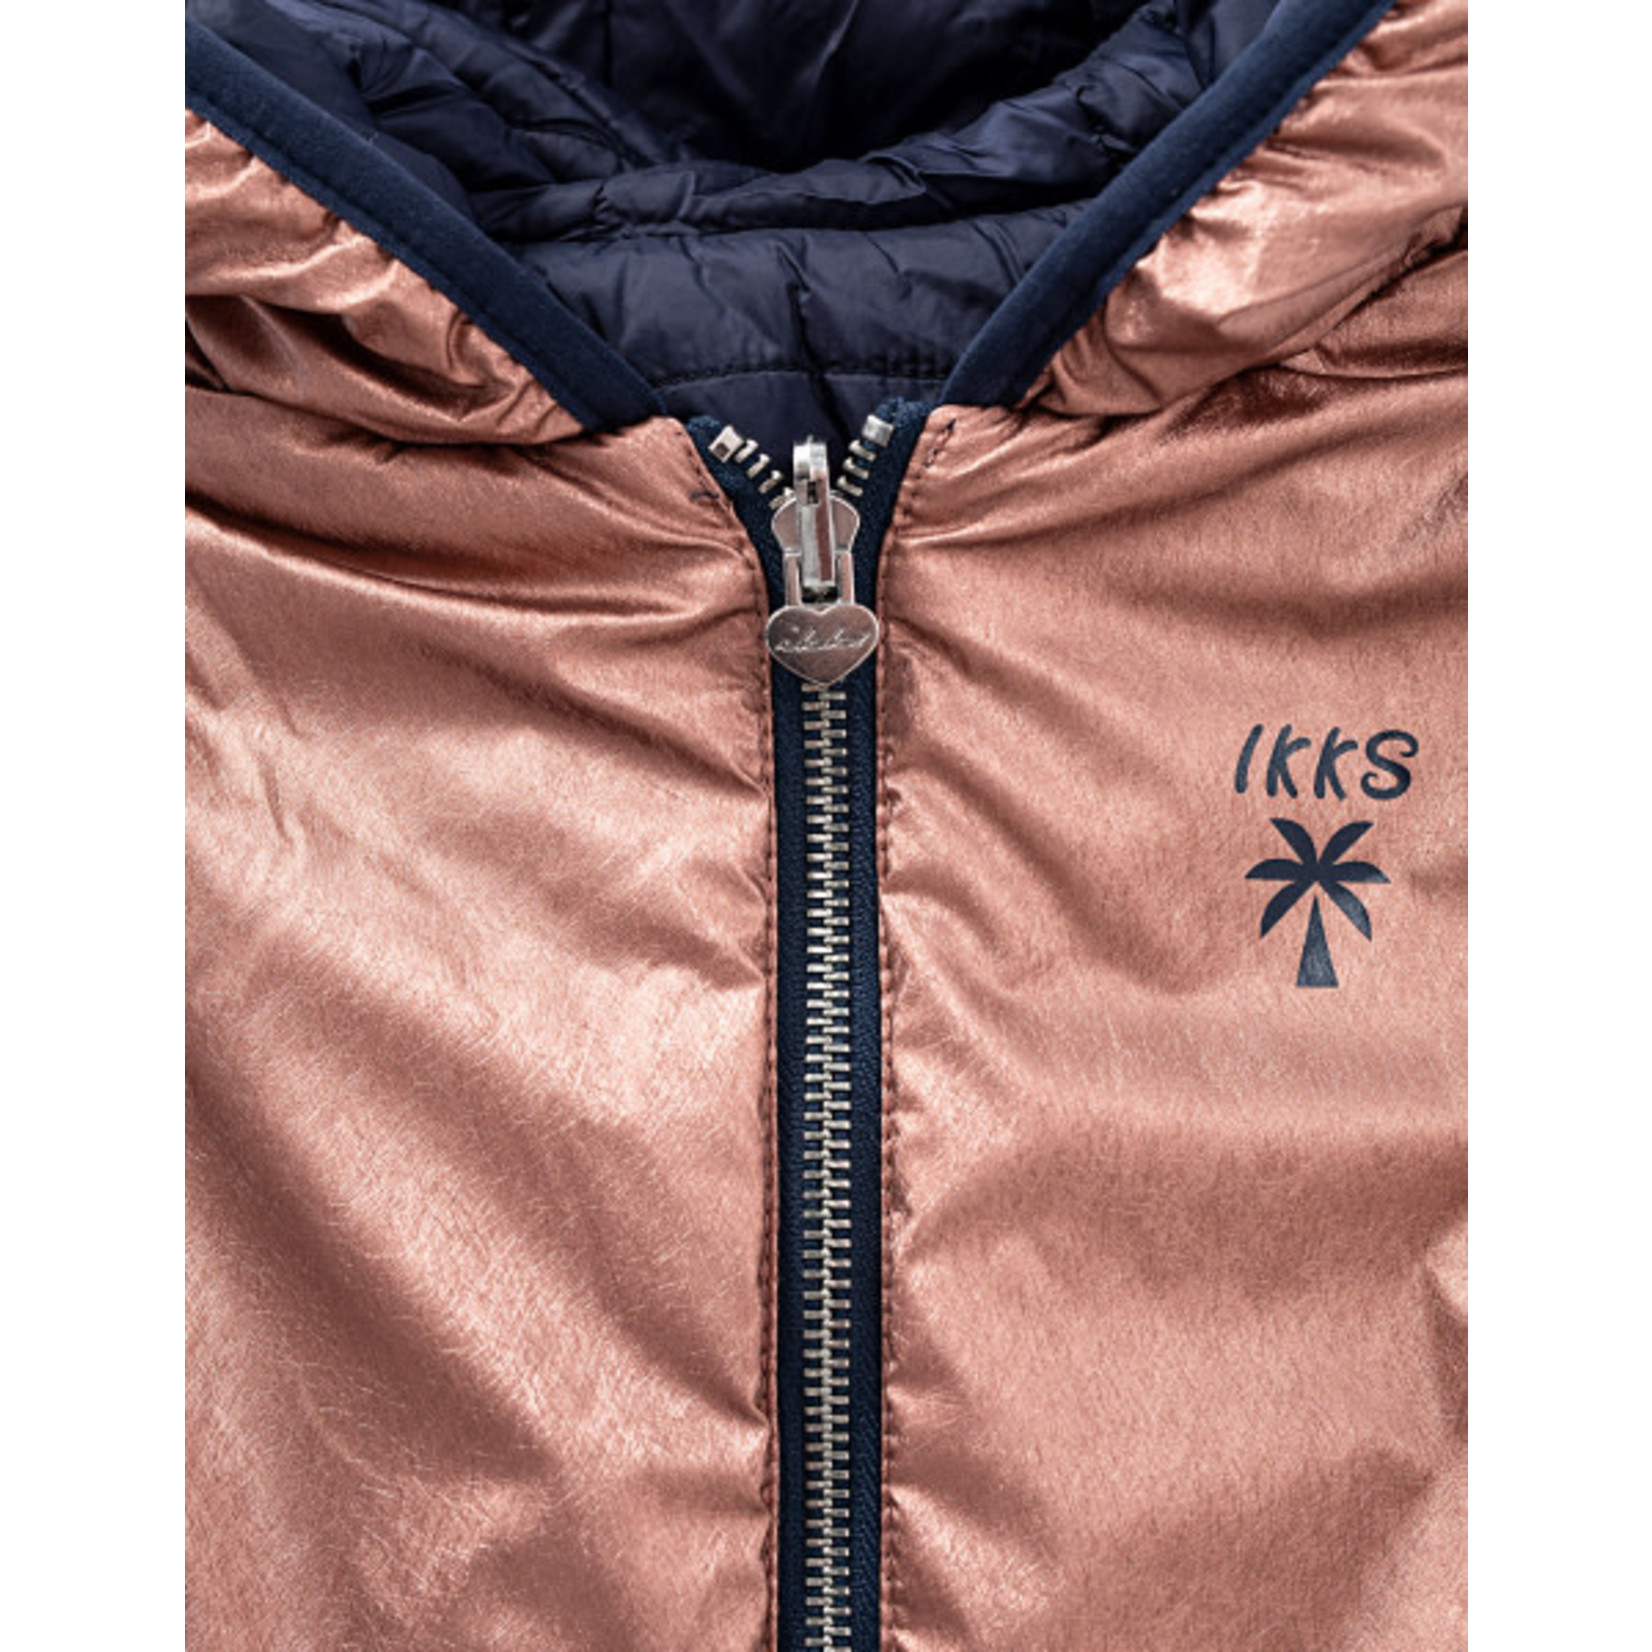 IKKS Dons jack Love of the ocean XS41032 3A/98